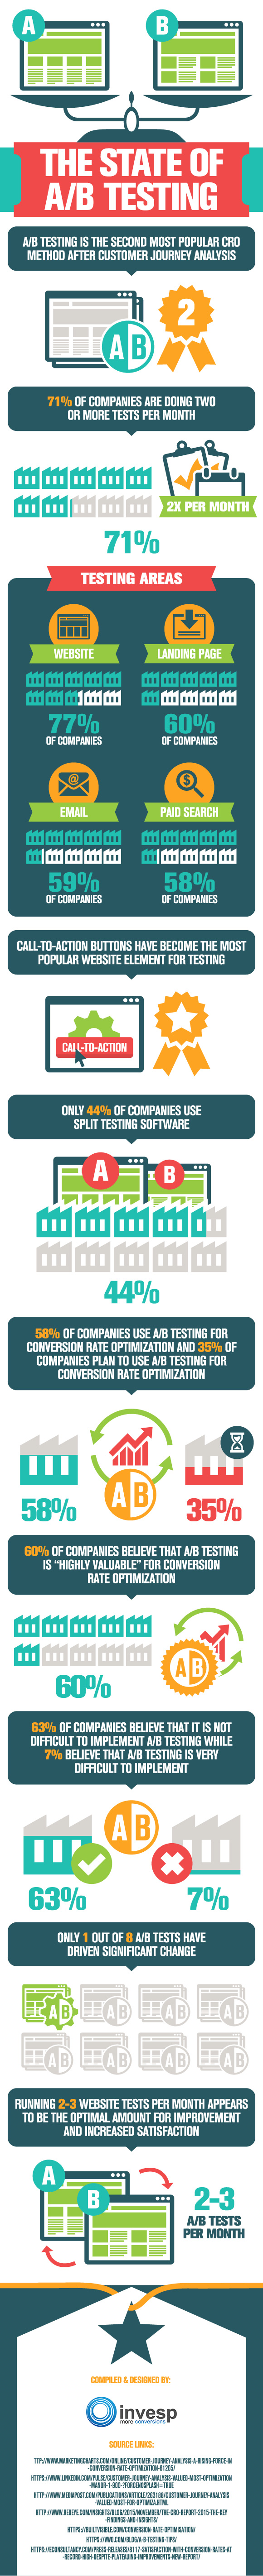 The state of A/B Testing